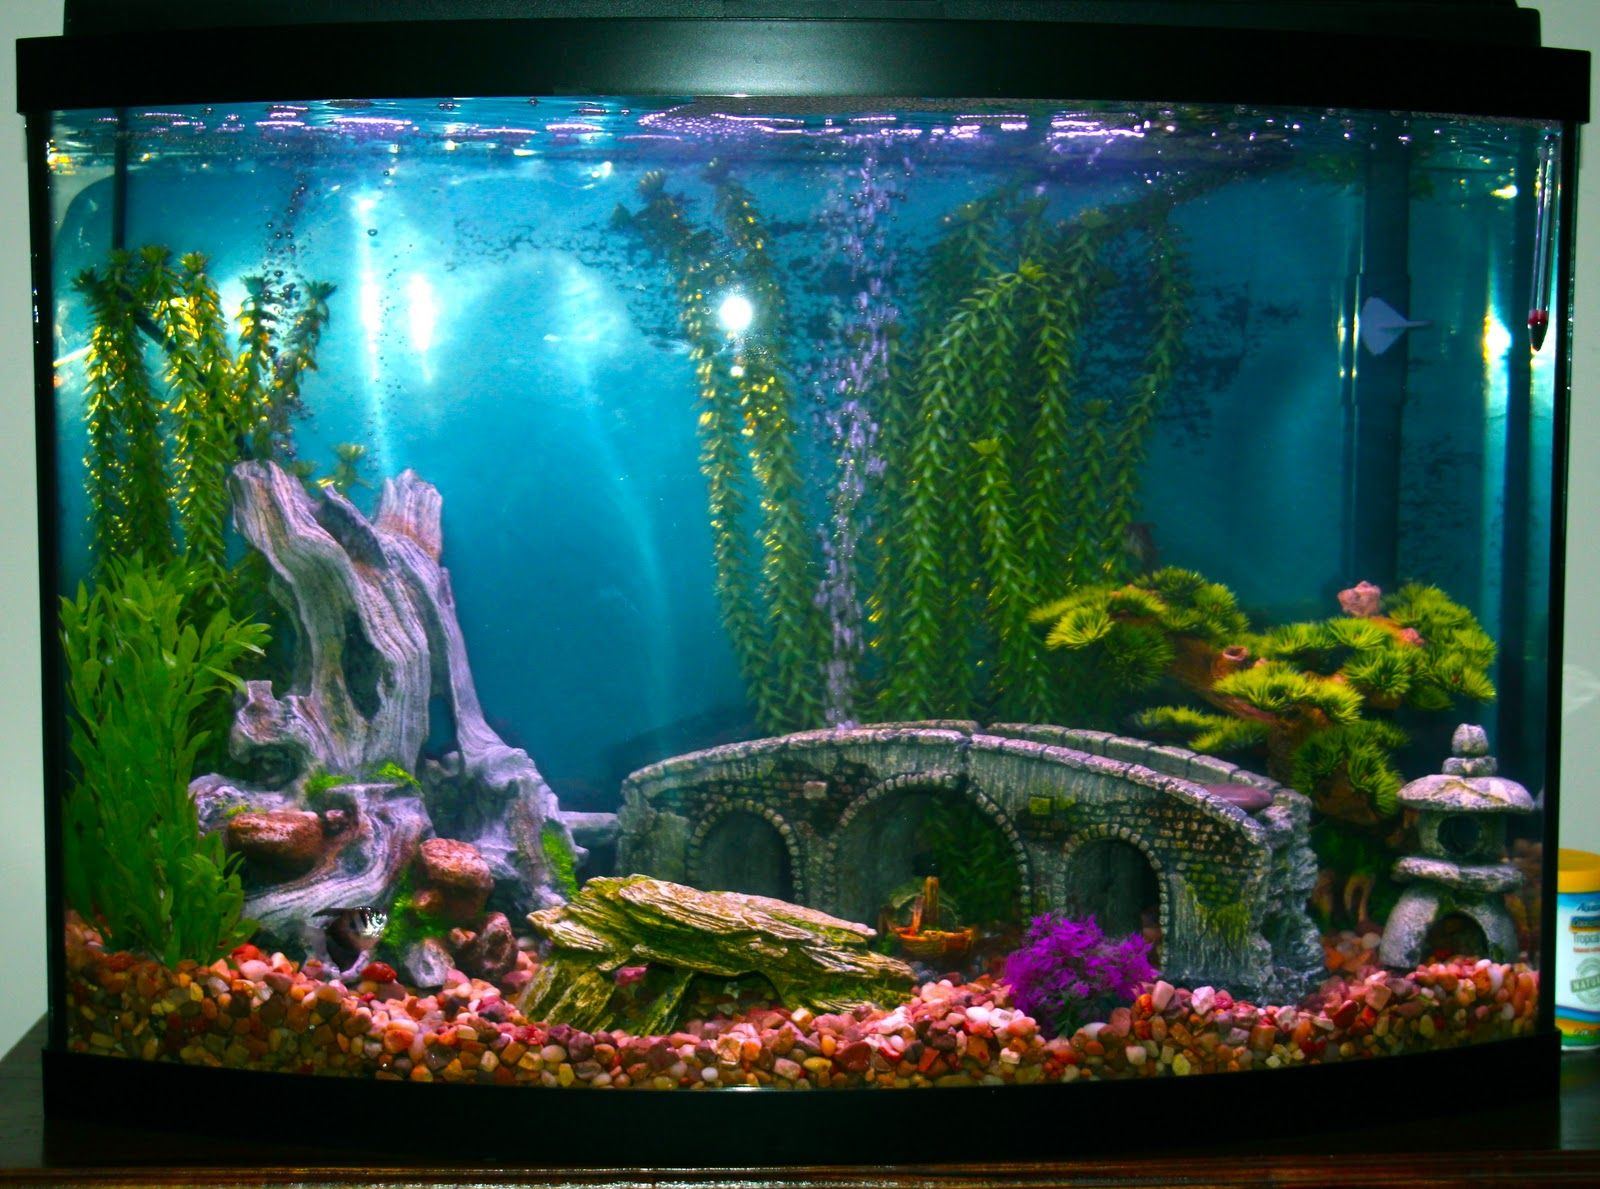 Fish Aquarium - Home aquarium decoration ideas